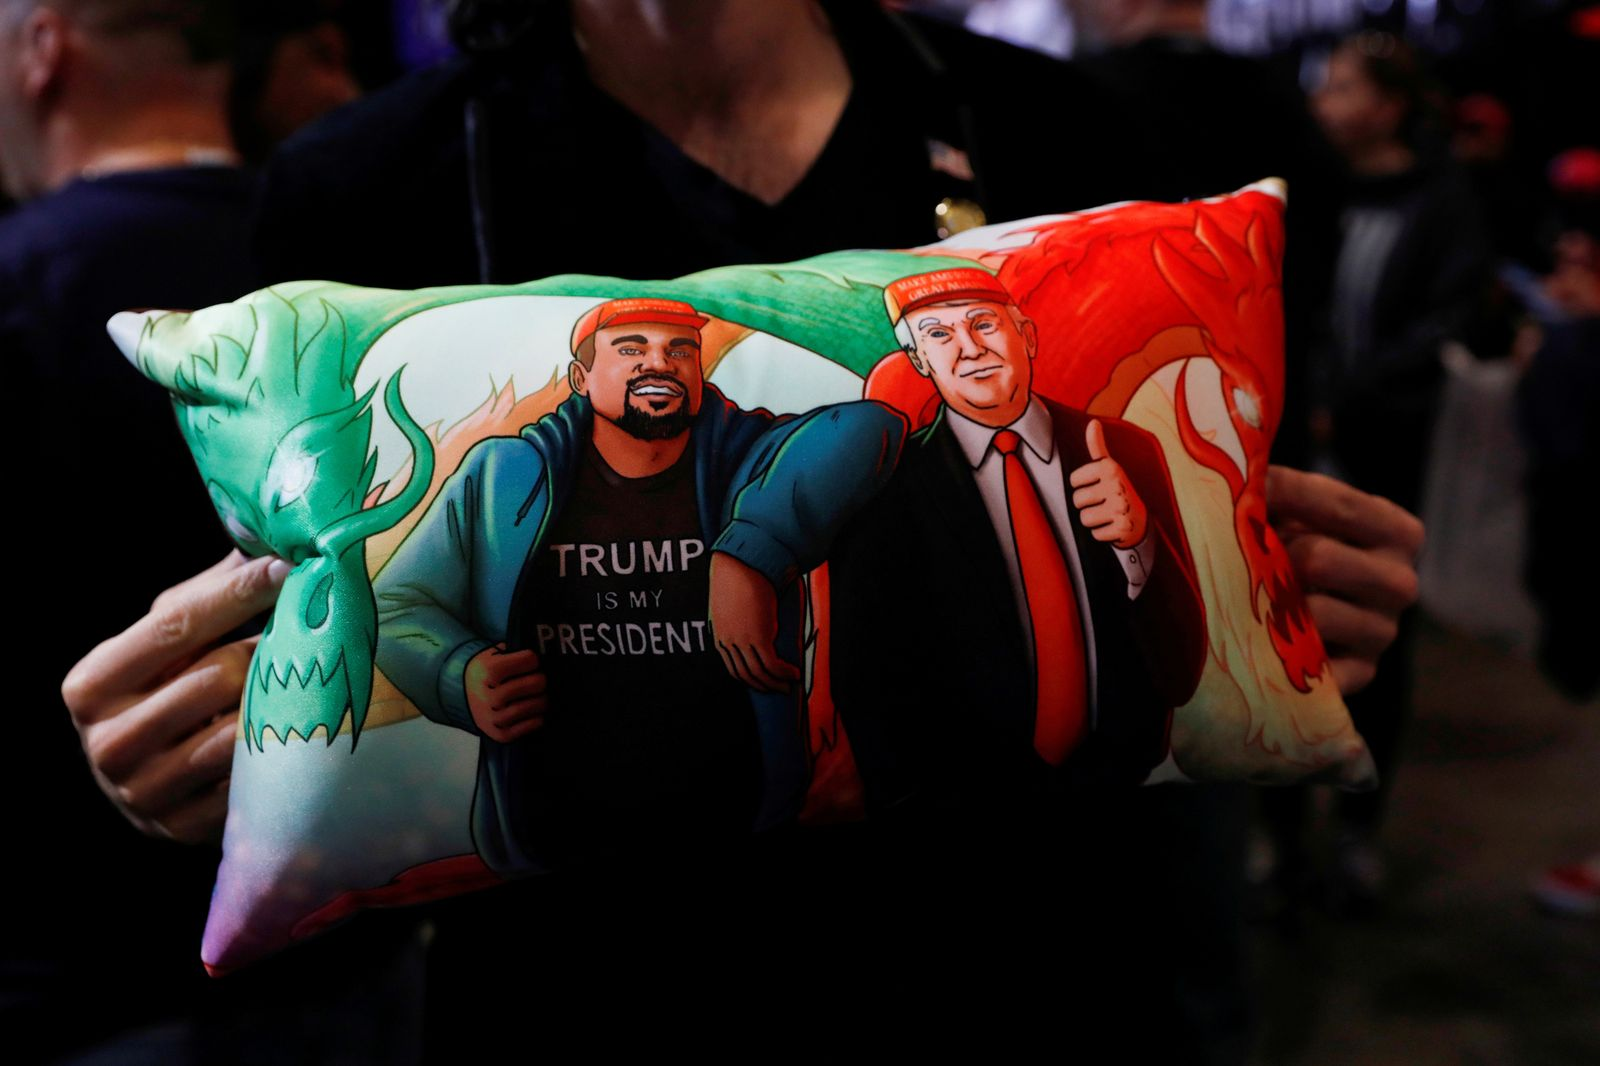 FILE PHOTO: A supporter of U.S. President Donald Trump holds a pillow of him and Kanye West at his campaign rally in Las Vegas, Nevada